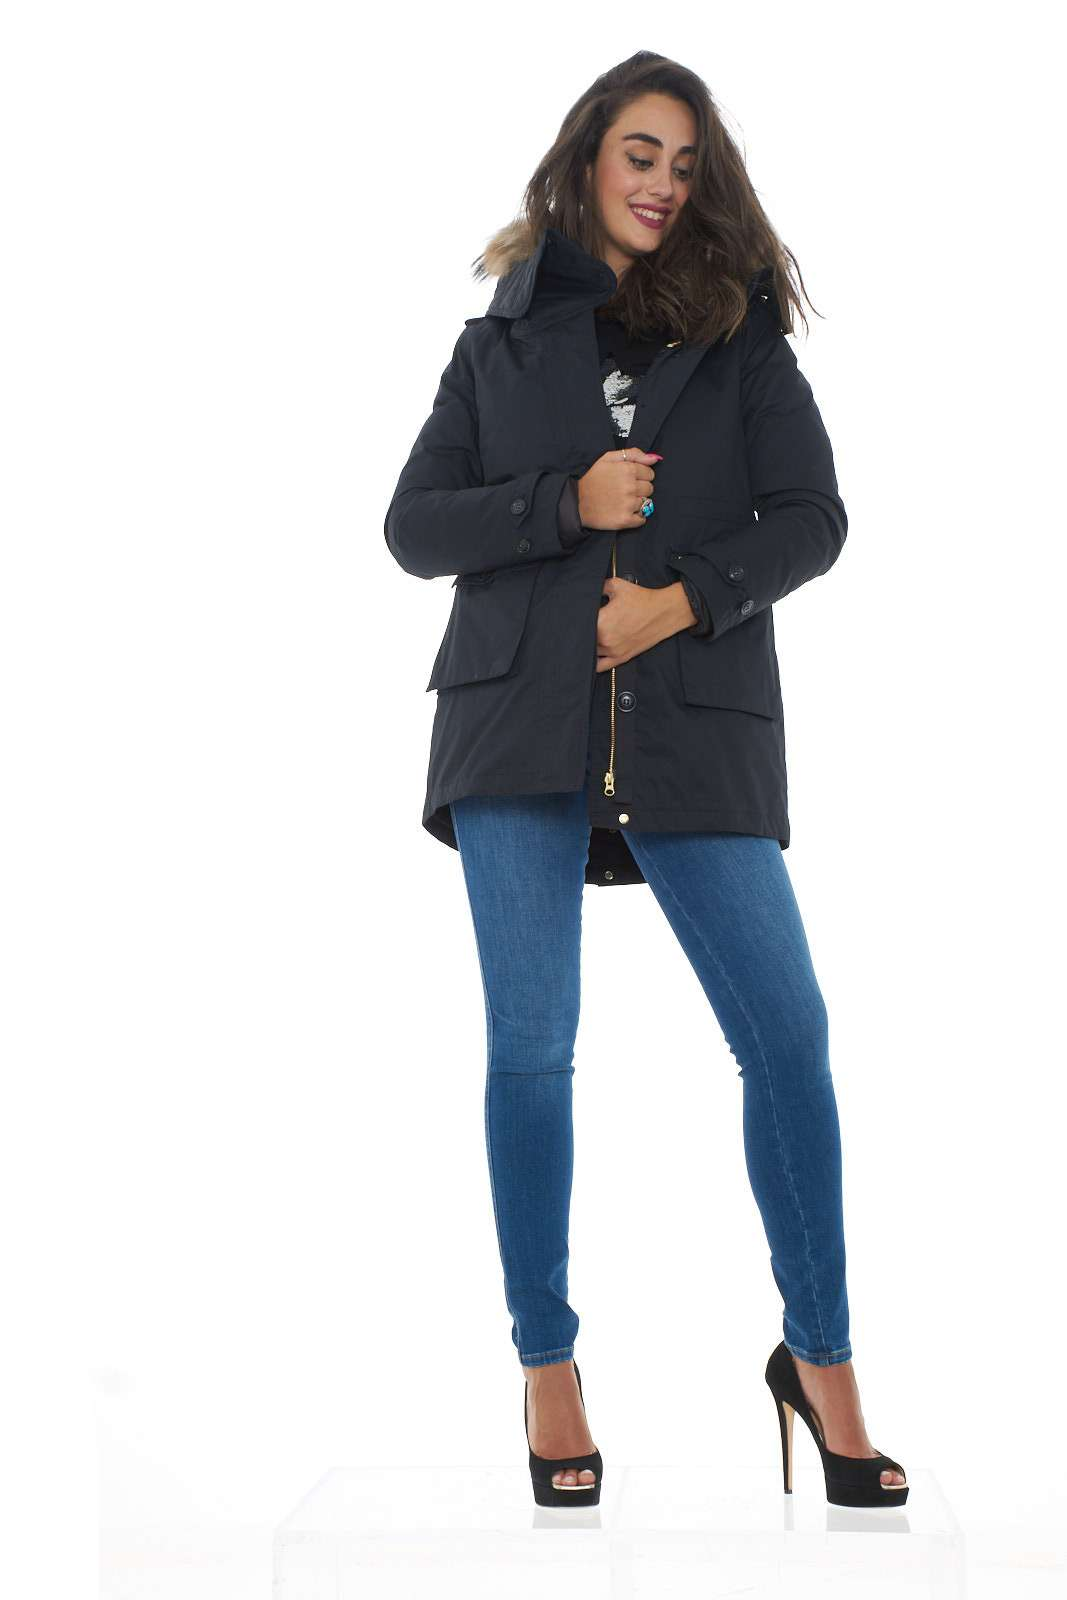 https://www.parmax.com/media/catalog/product/a/i/ai-outlet_parmax-cappotto-donna-woolrich-wwcps2685-d.jpg